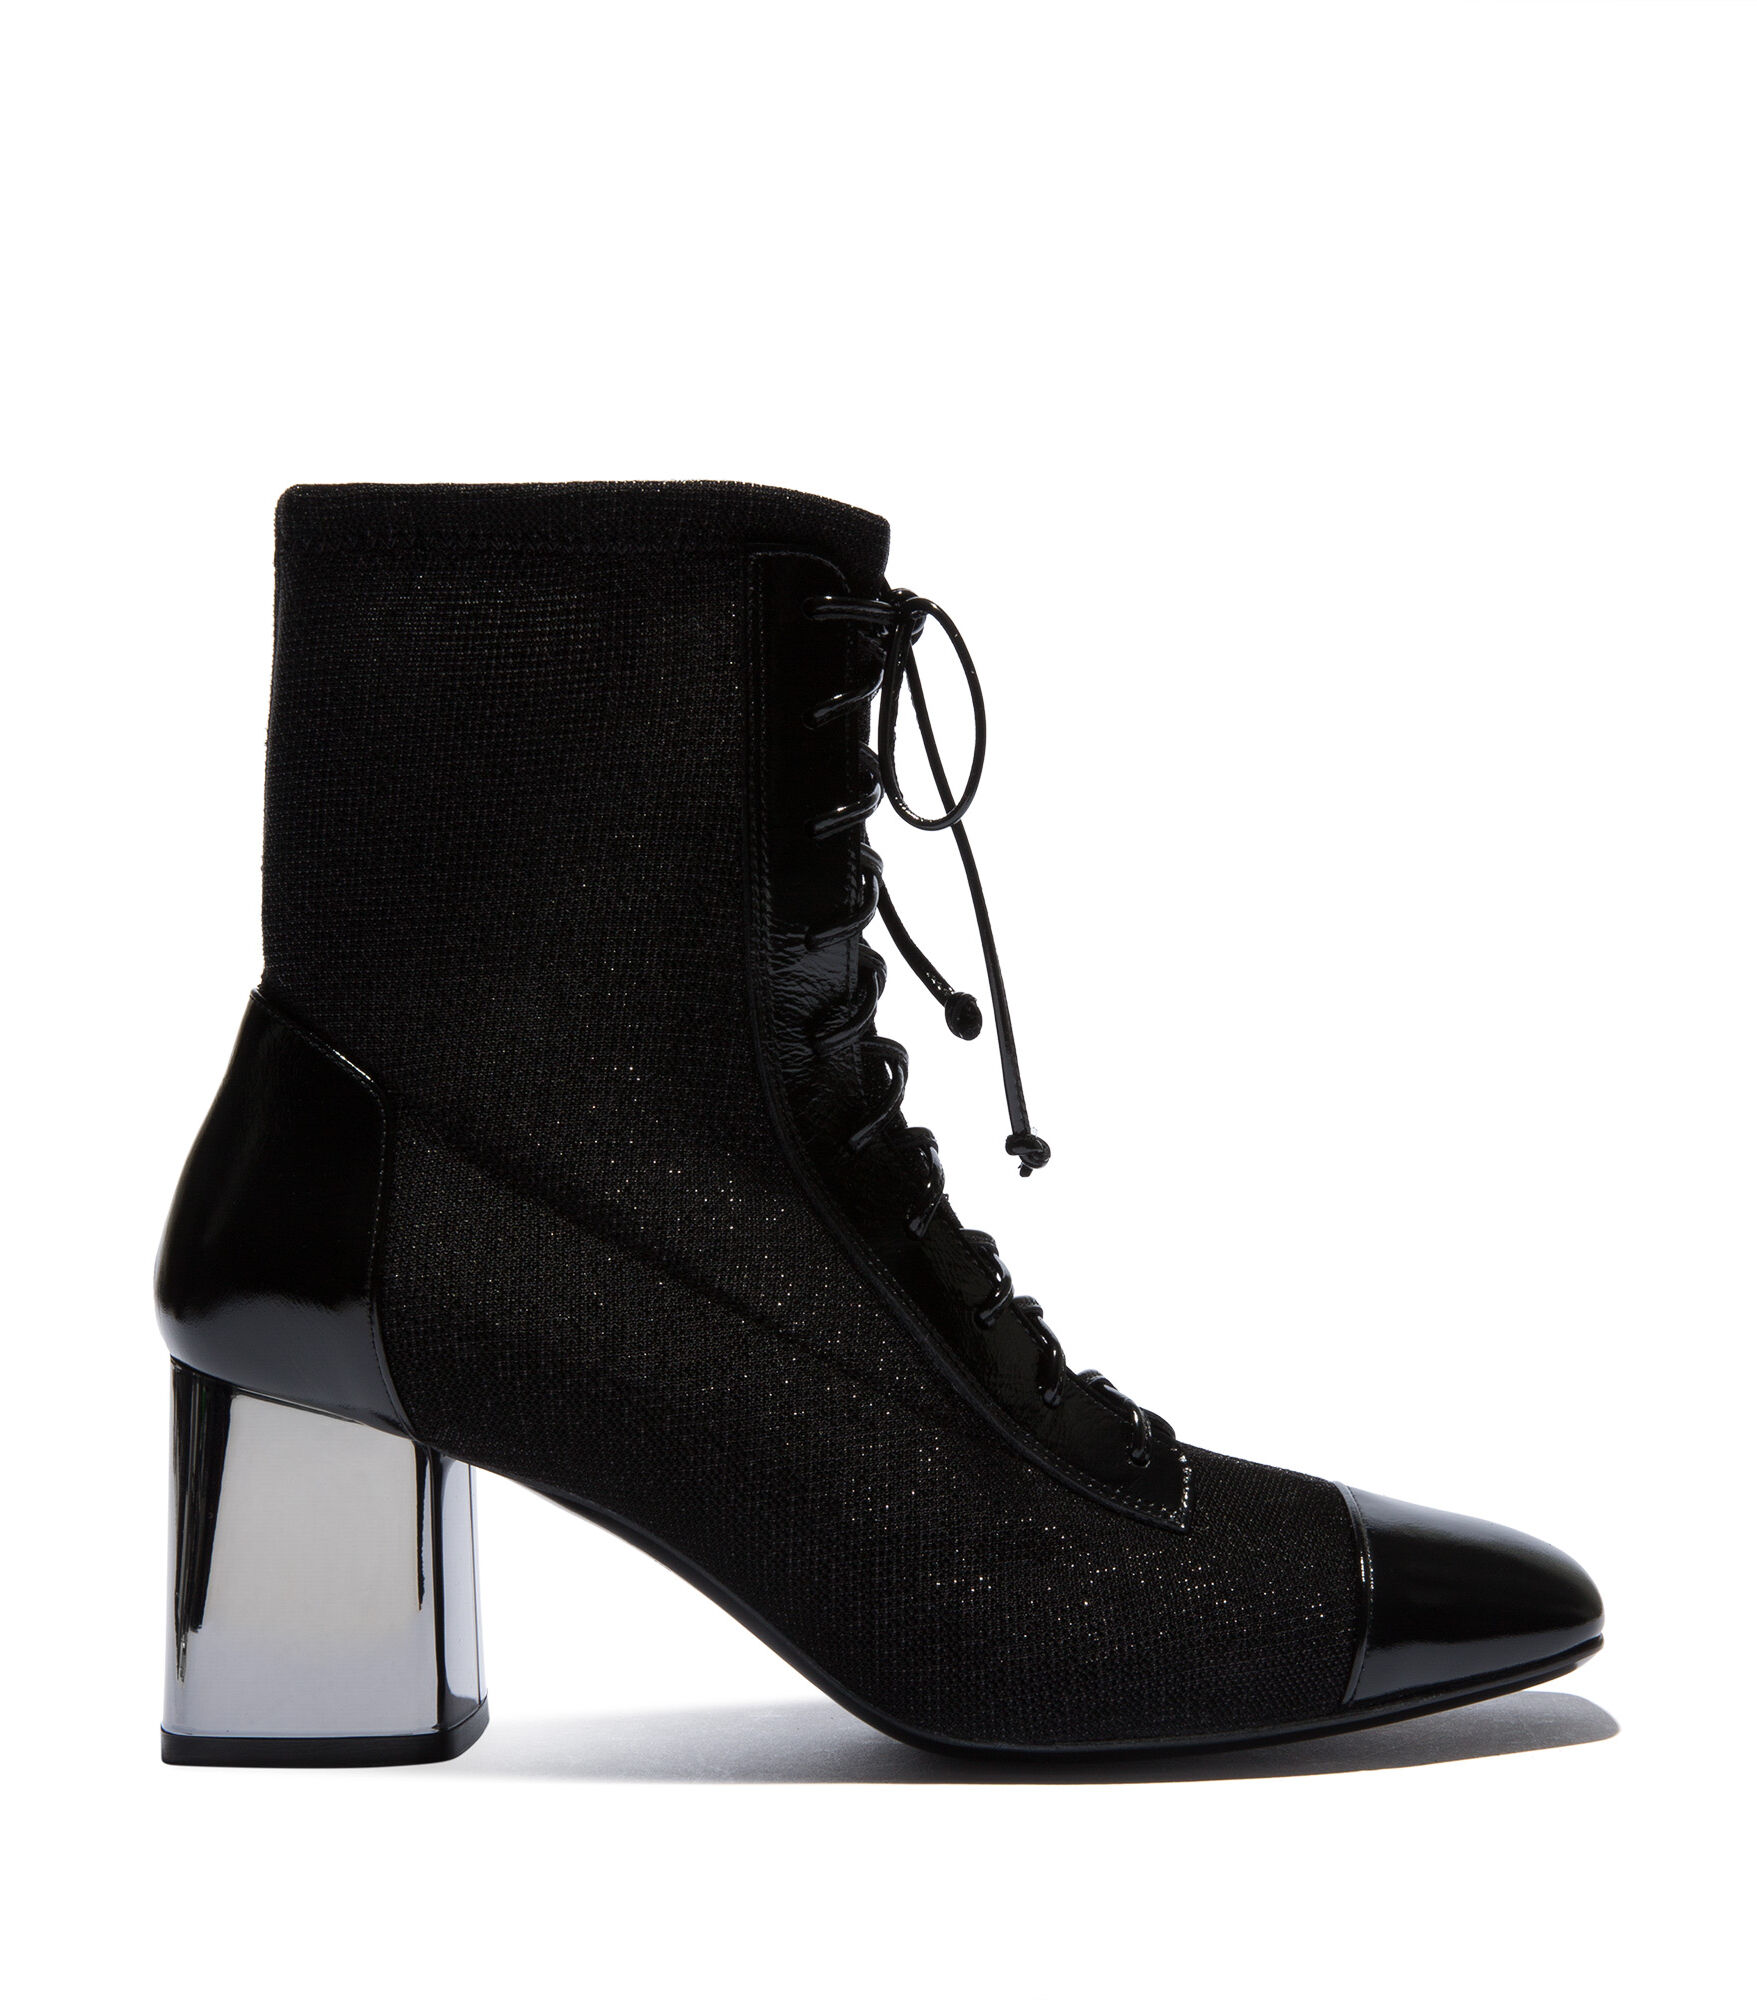 Casadei Ankle Boots - Neowall Black Jersey